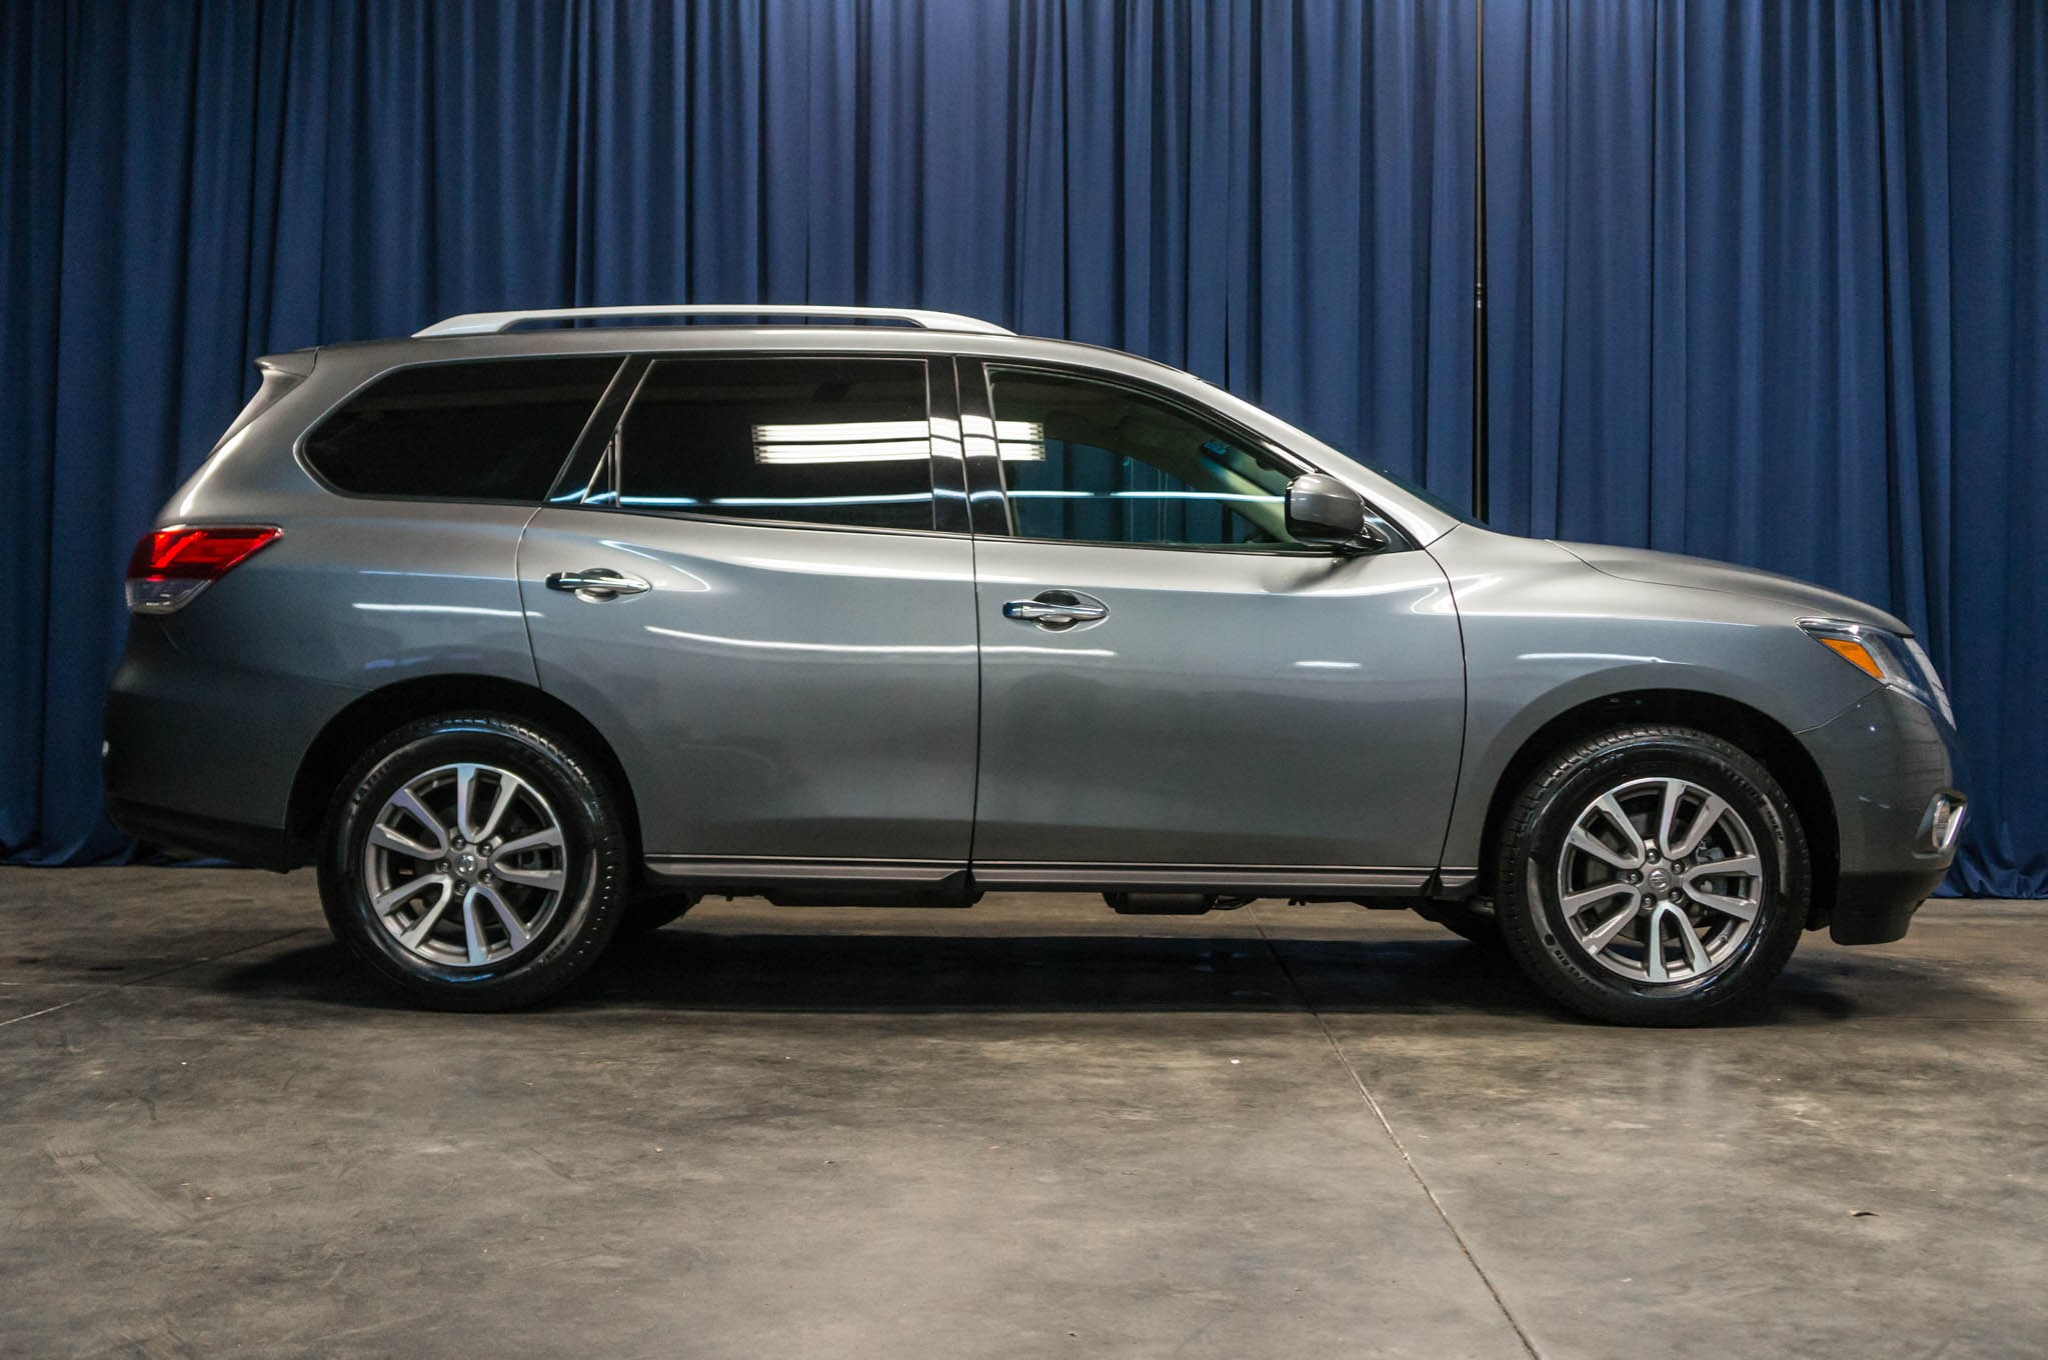 model nissan advice reviews faults make pathfinder cars prices uk specs used co stats usedcarexpert